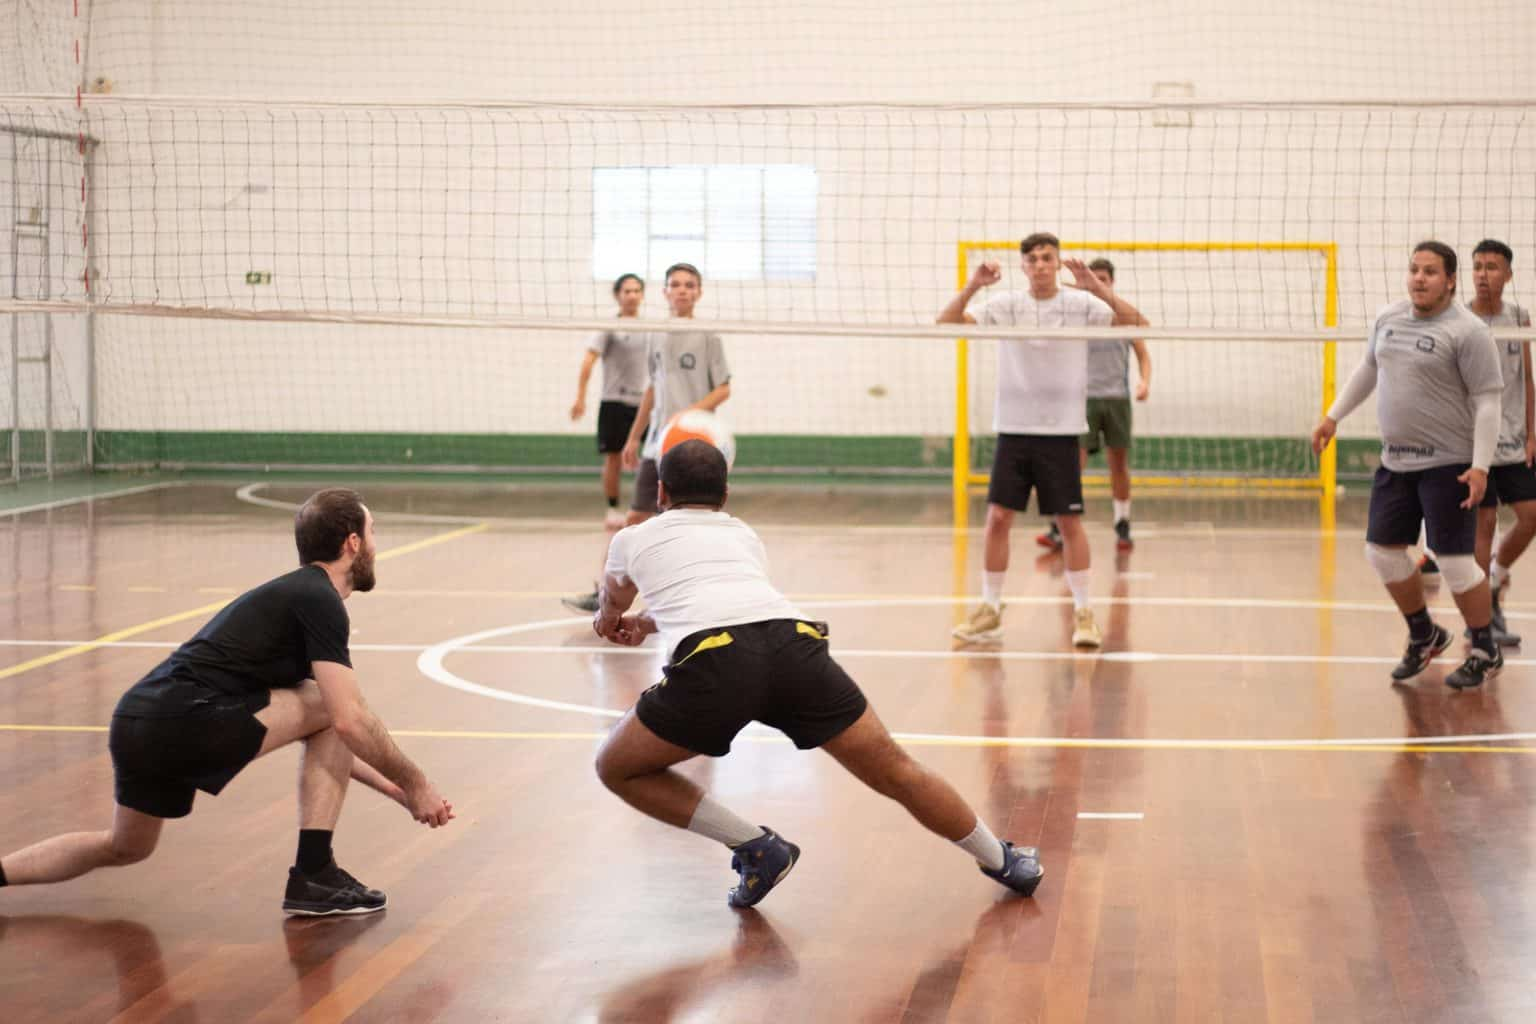 Players testing, do Adidas volleyball shoes run big